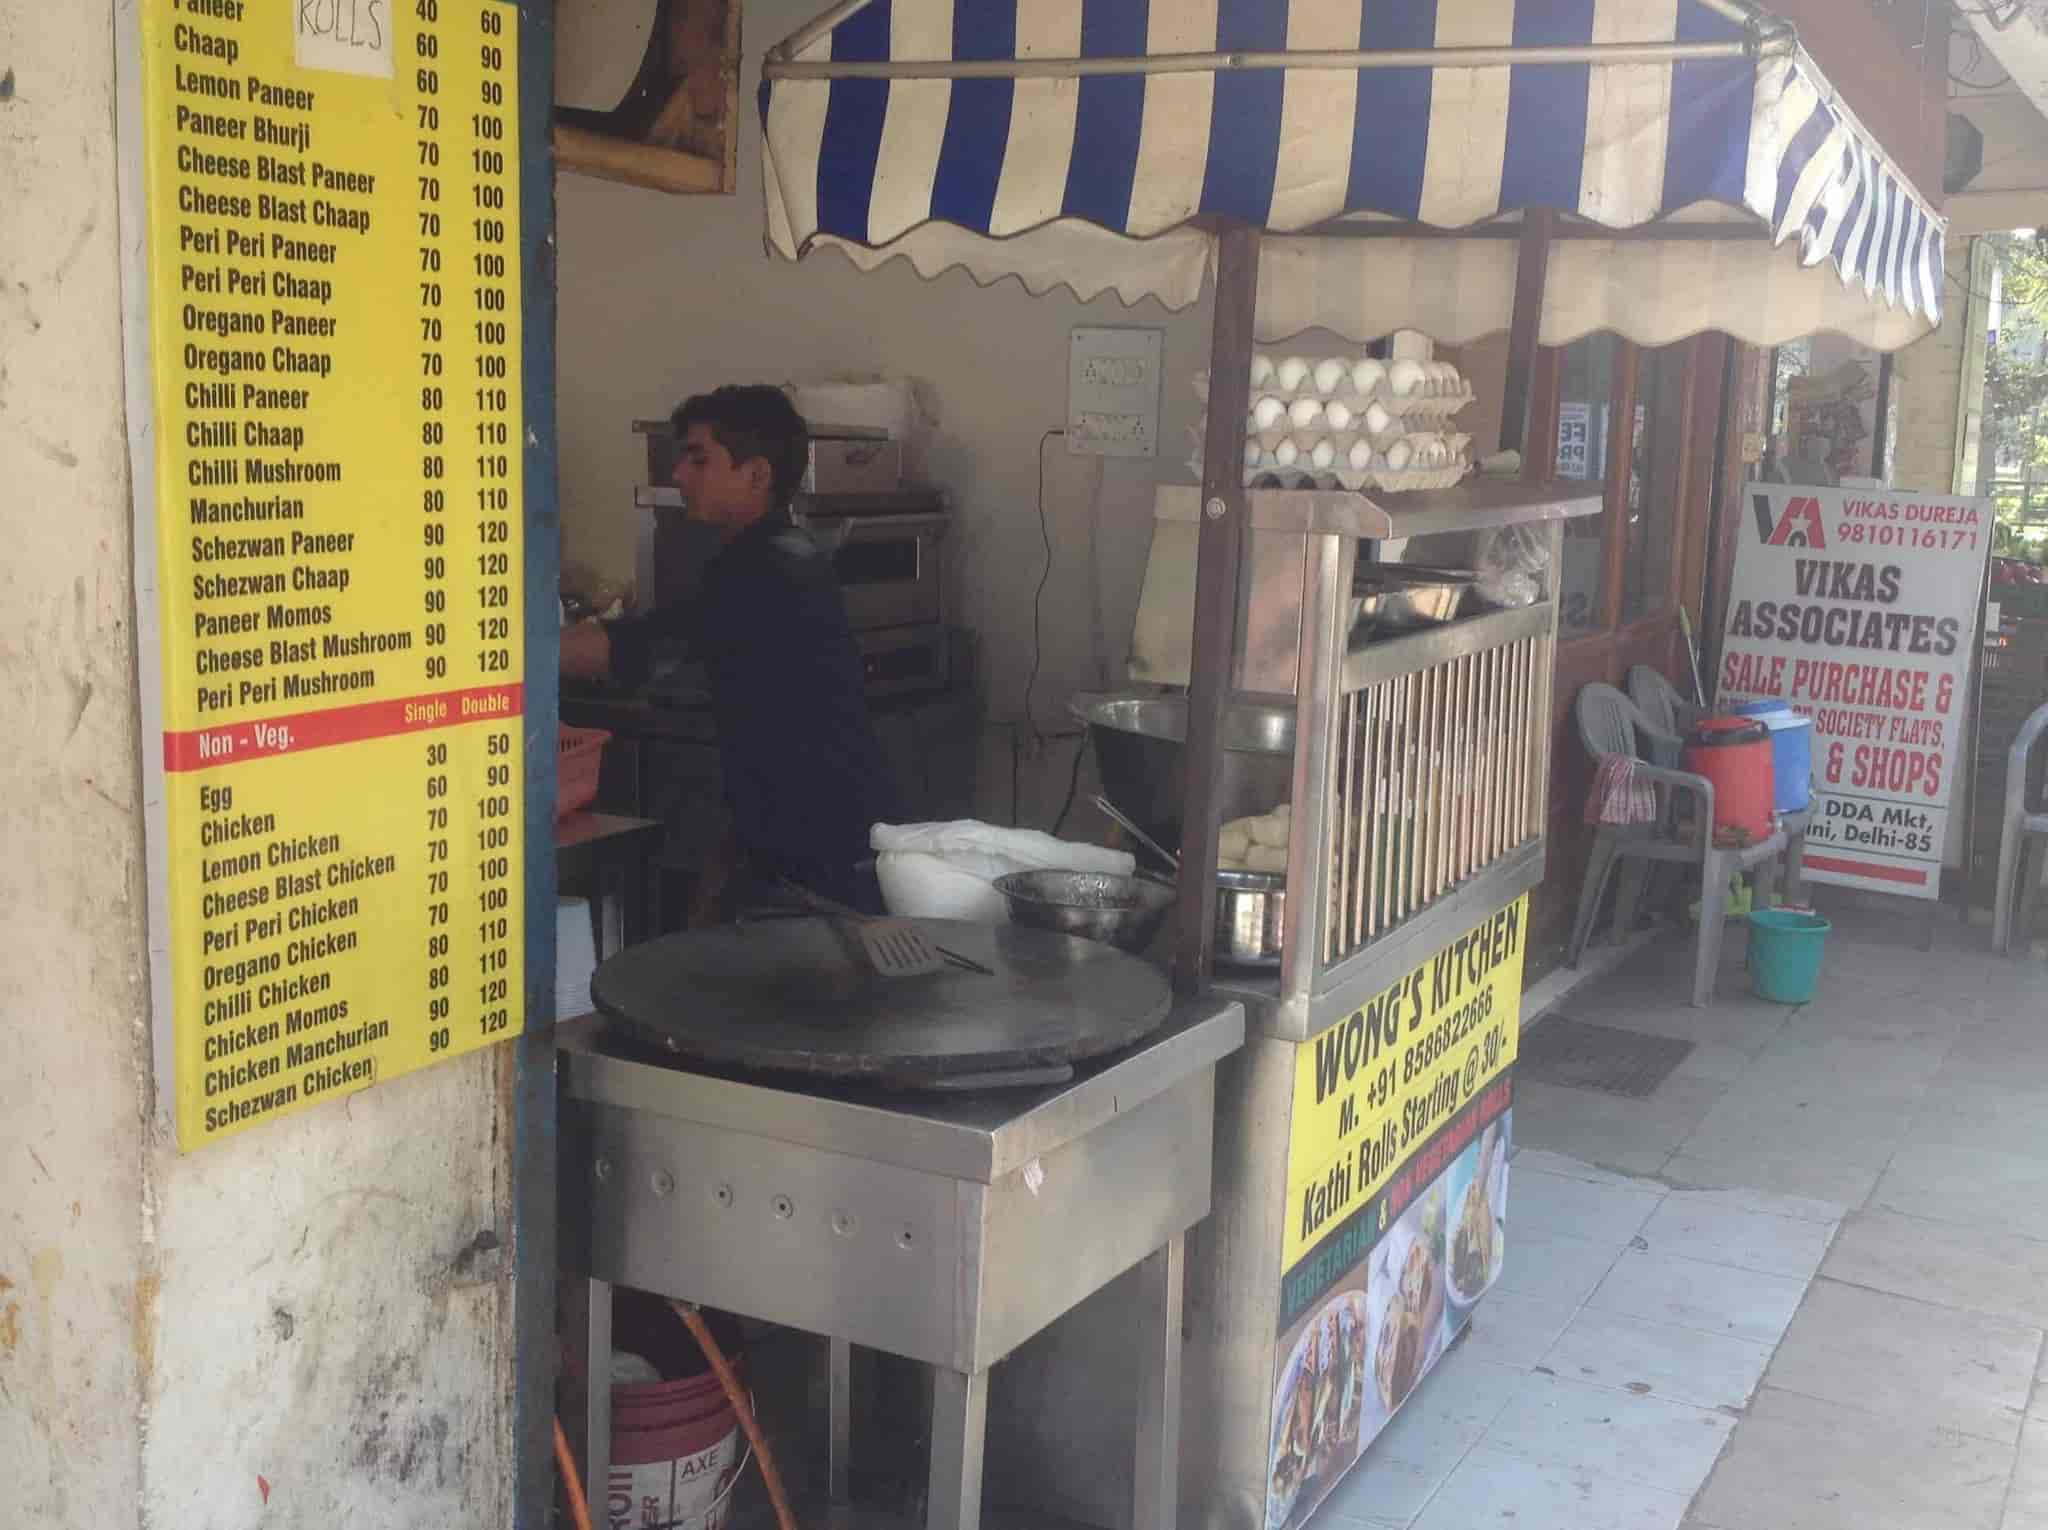 Wongs Kitchen Photos, Rohini Sector 9, Delhi-NCR- Pictures & Images ...